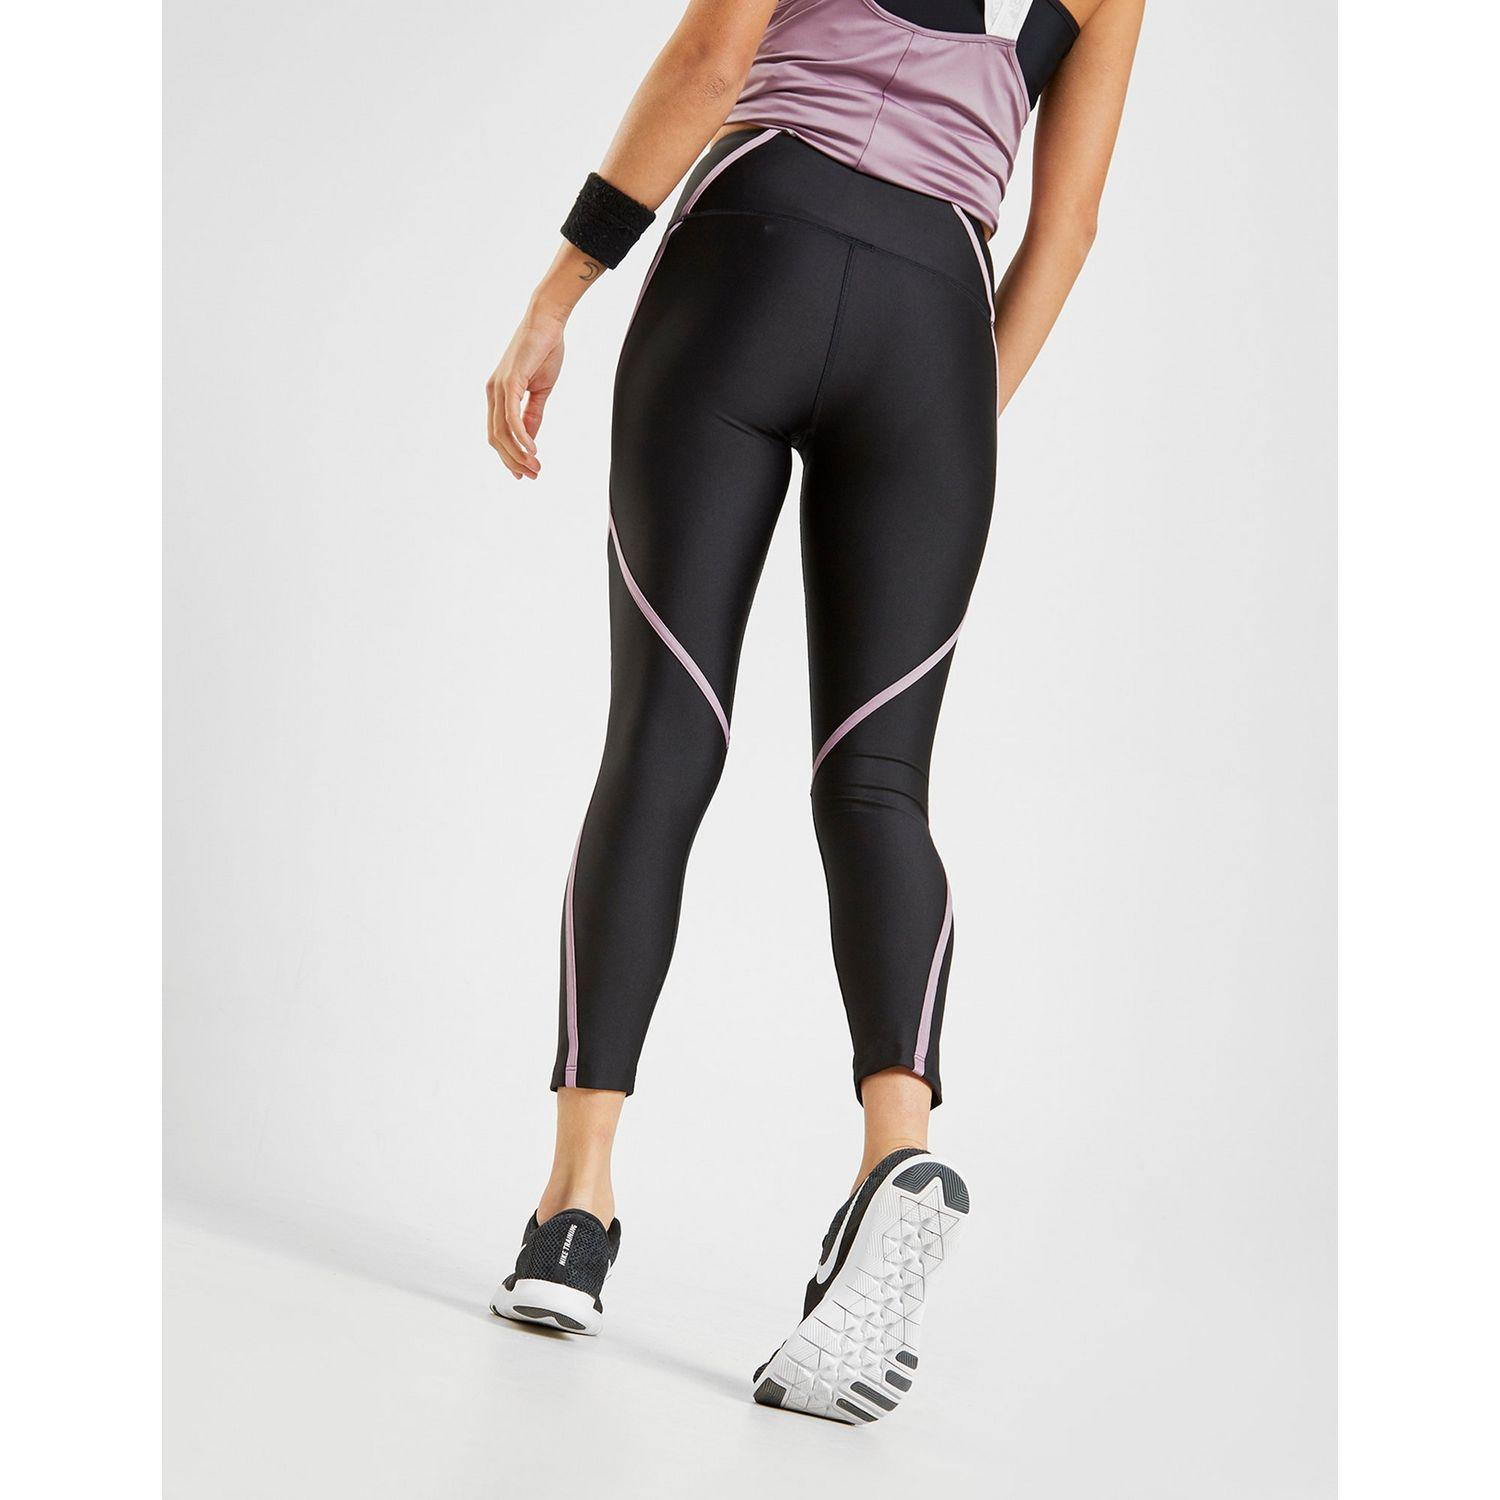 b2d02c11c2f3a4 Under Armour Piping Tights in Black - Lyst